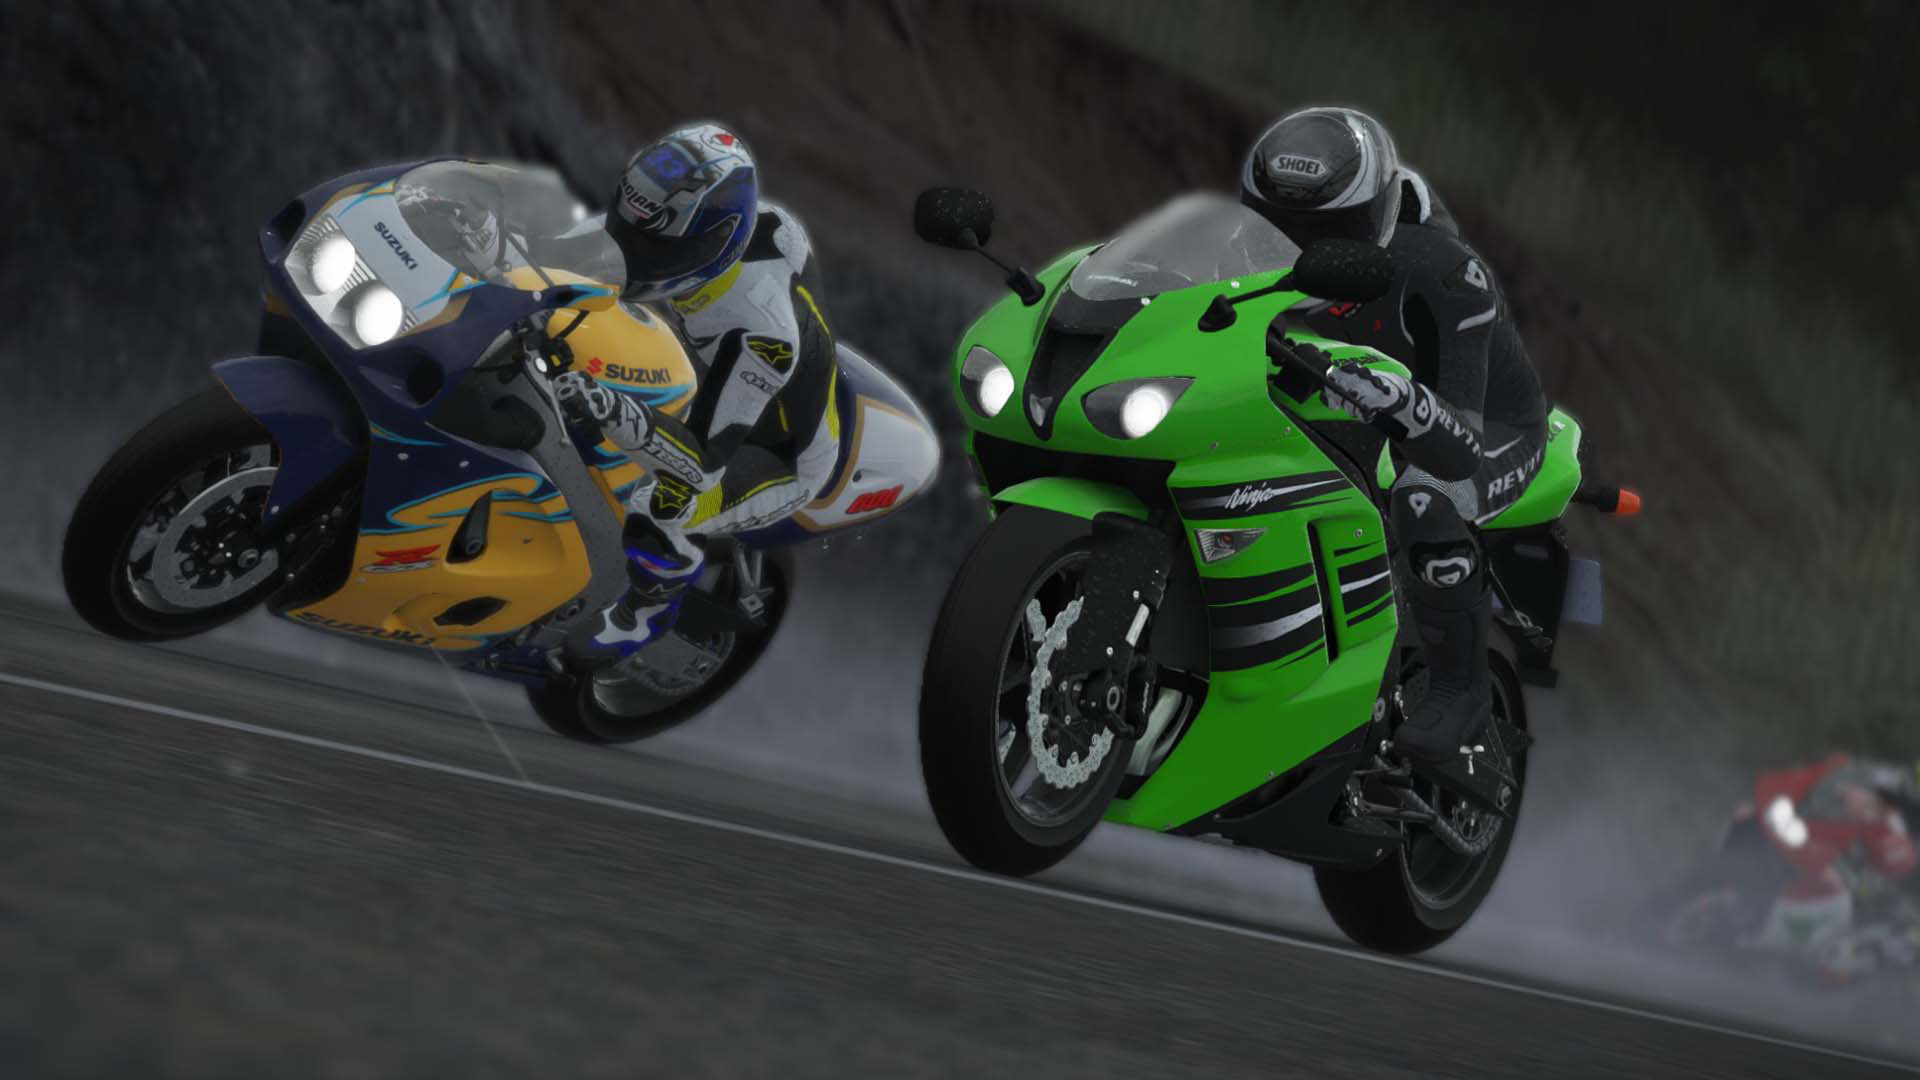 ride2-screen-09-ps4-us-14feb2017?$MediaC